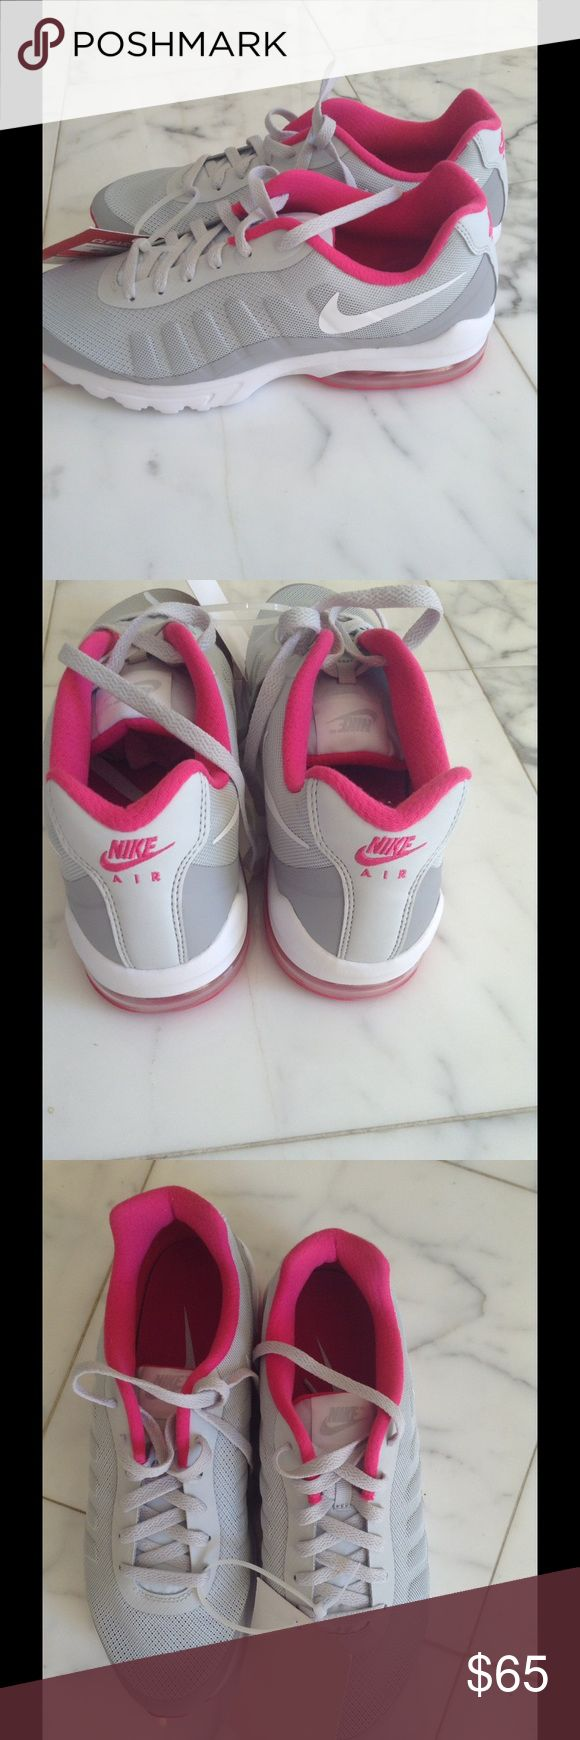 New Nike Airmax in Fuschia and Gray Size 10 Brand New Ladies Nike Air Max Shoe in Fuschia and Gray Size 10 Nike Shoes Athletic Shoes